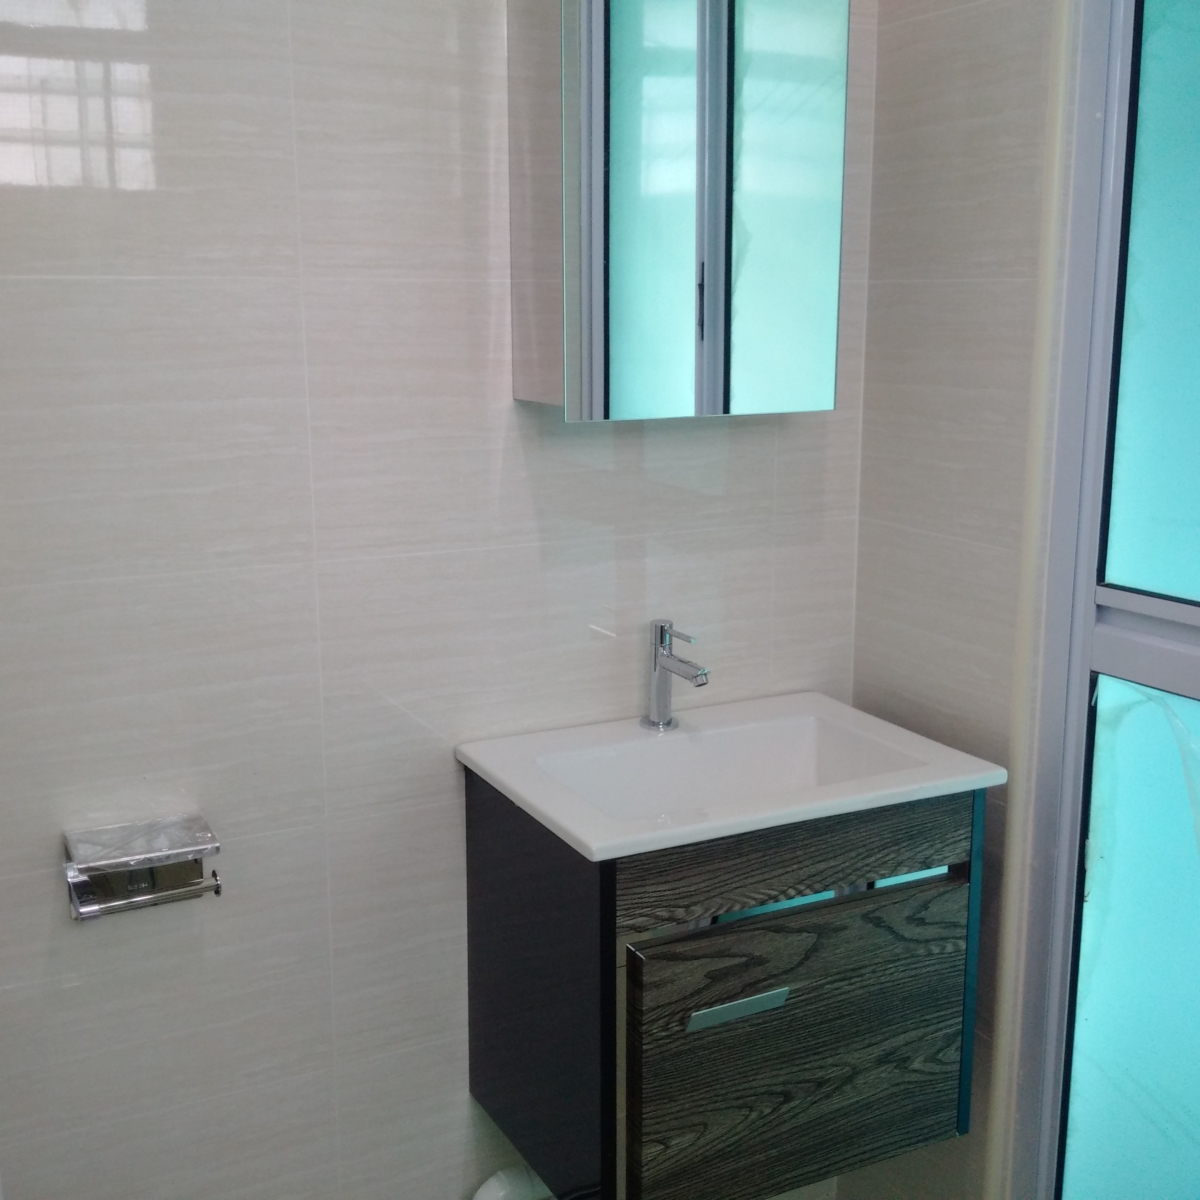 Toilet Facelft at Pasir Ris by Brilliance - front